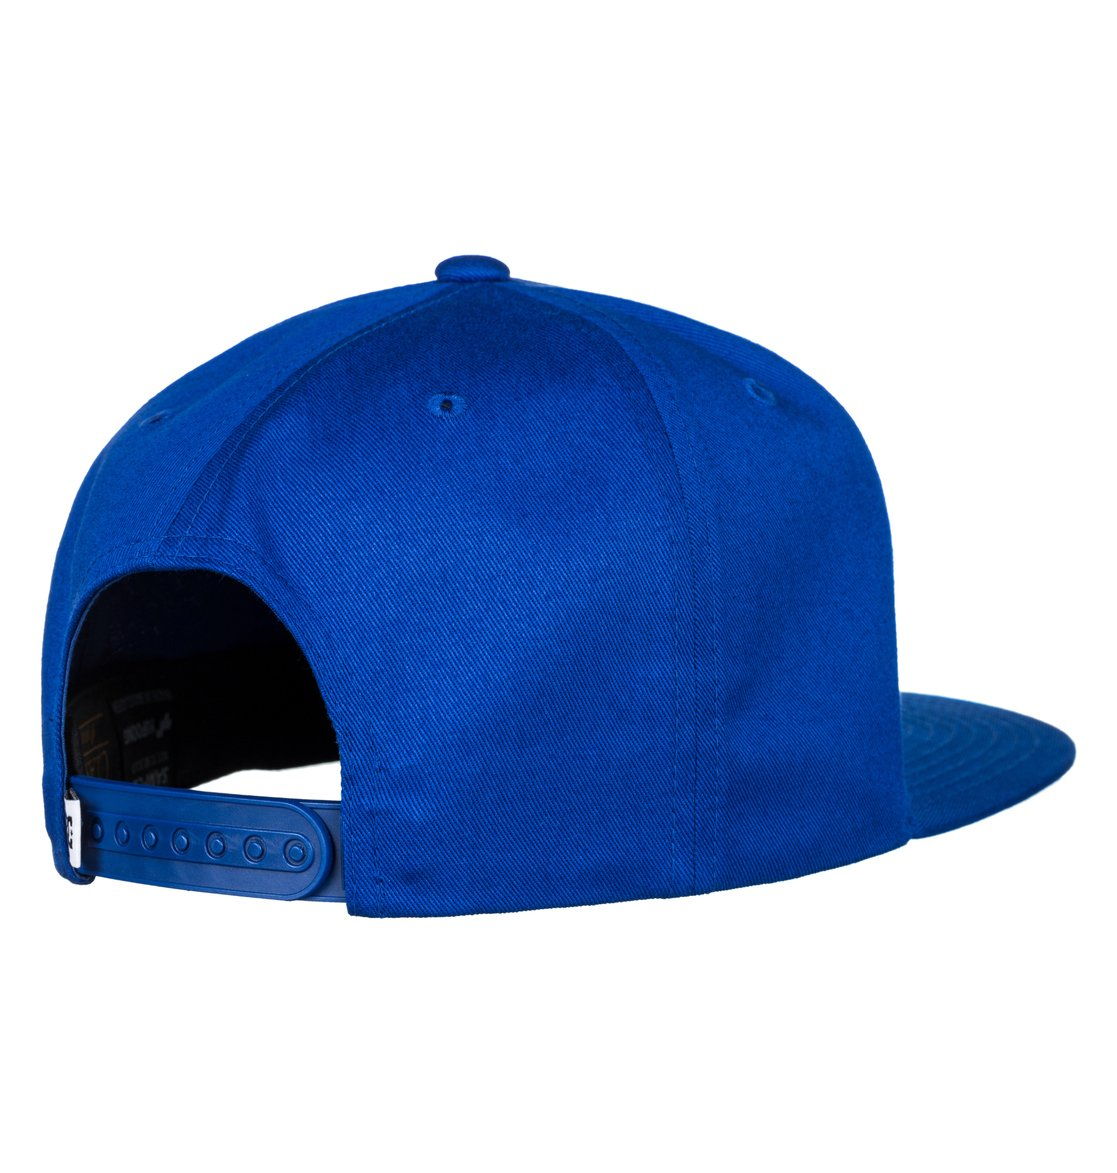 089fe37e696 2 Snapdoodle Snapback Hat Blue ADYHA03631 DC Shoes